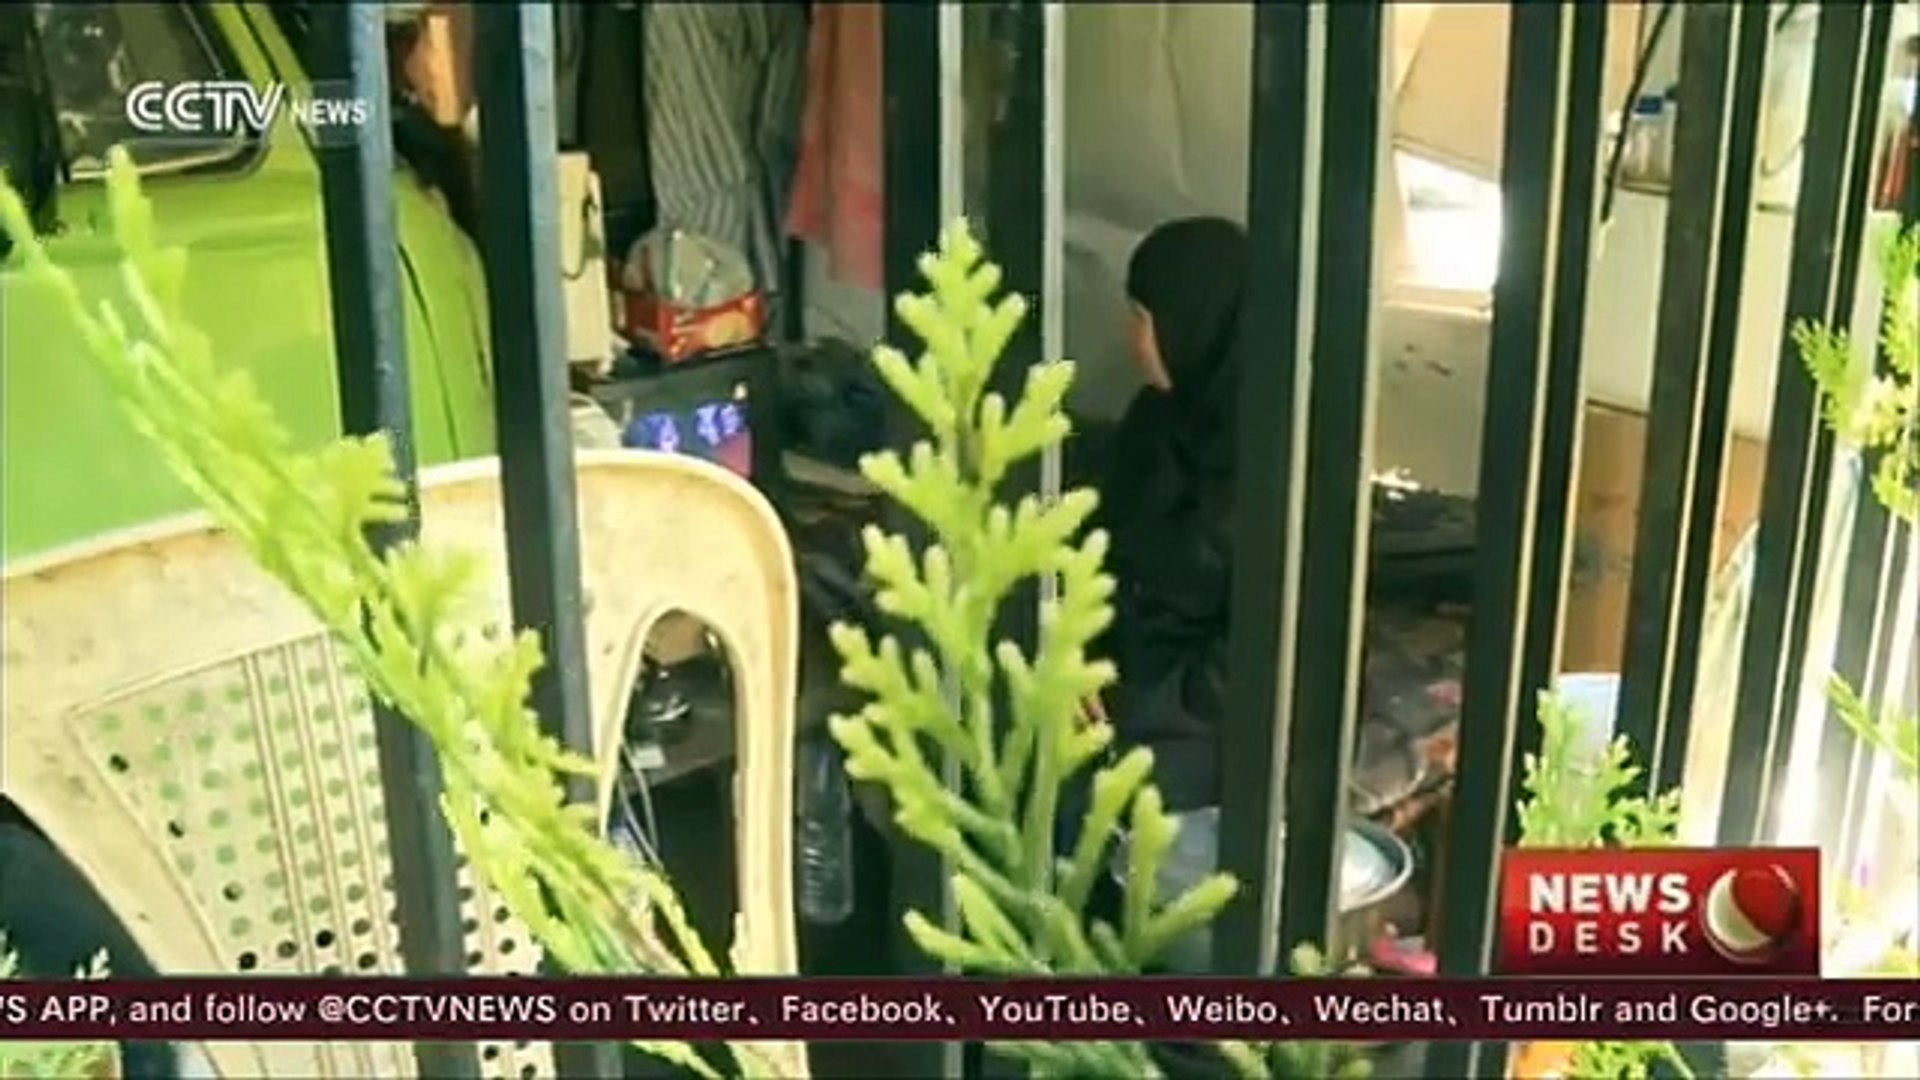 Life in a van: One Syrian family's life in Damascus